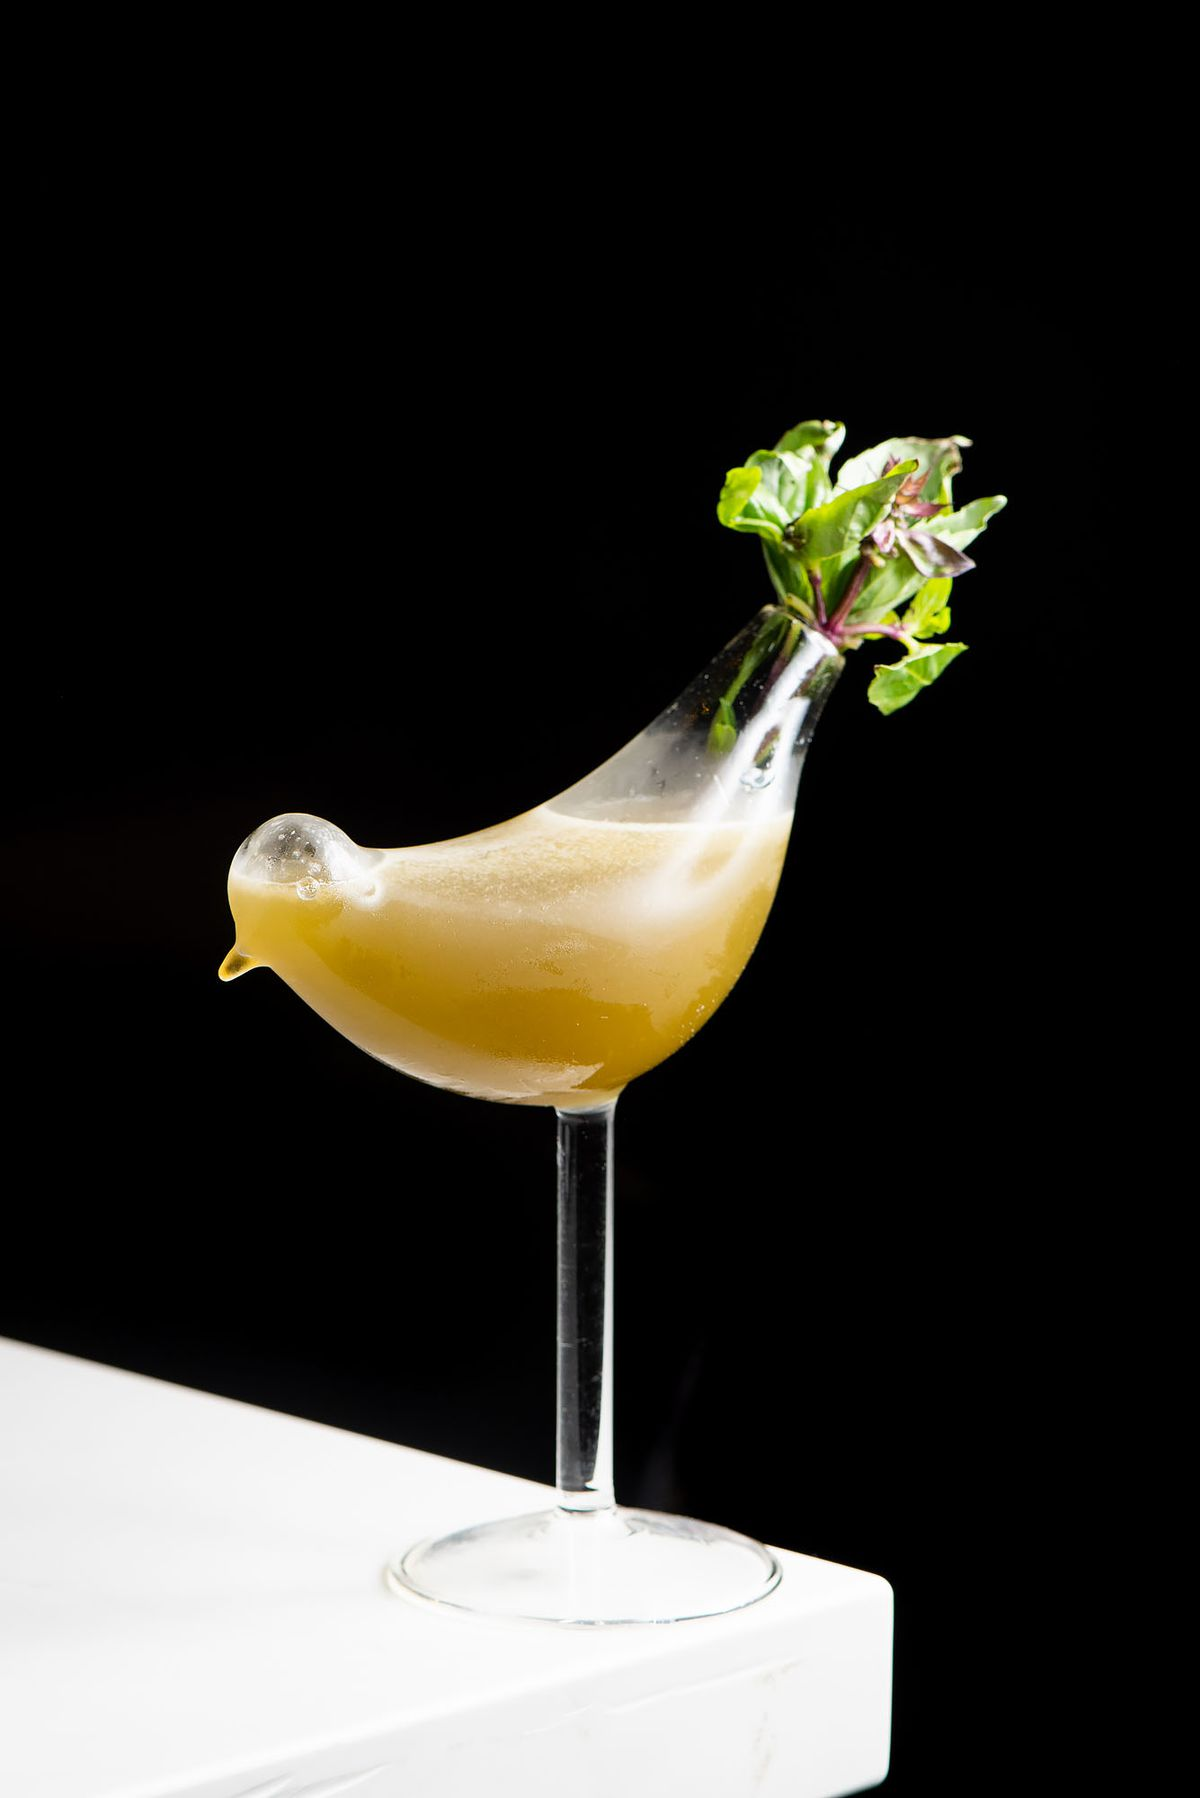 Gran Canaria cocktail at Canary in a bird-shaped glass and mint garnish.